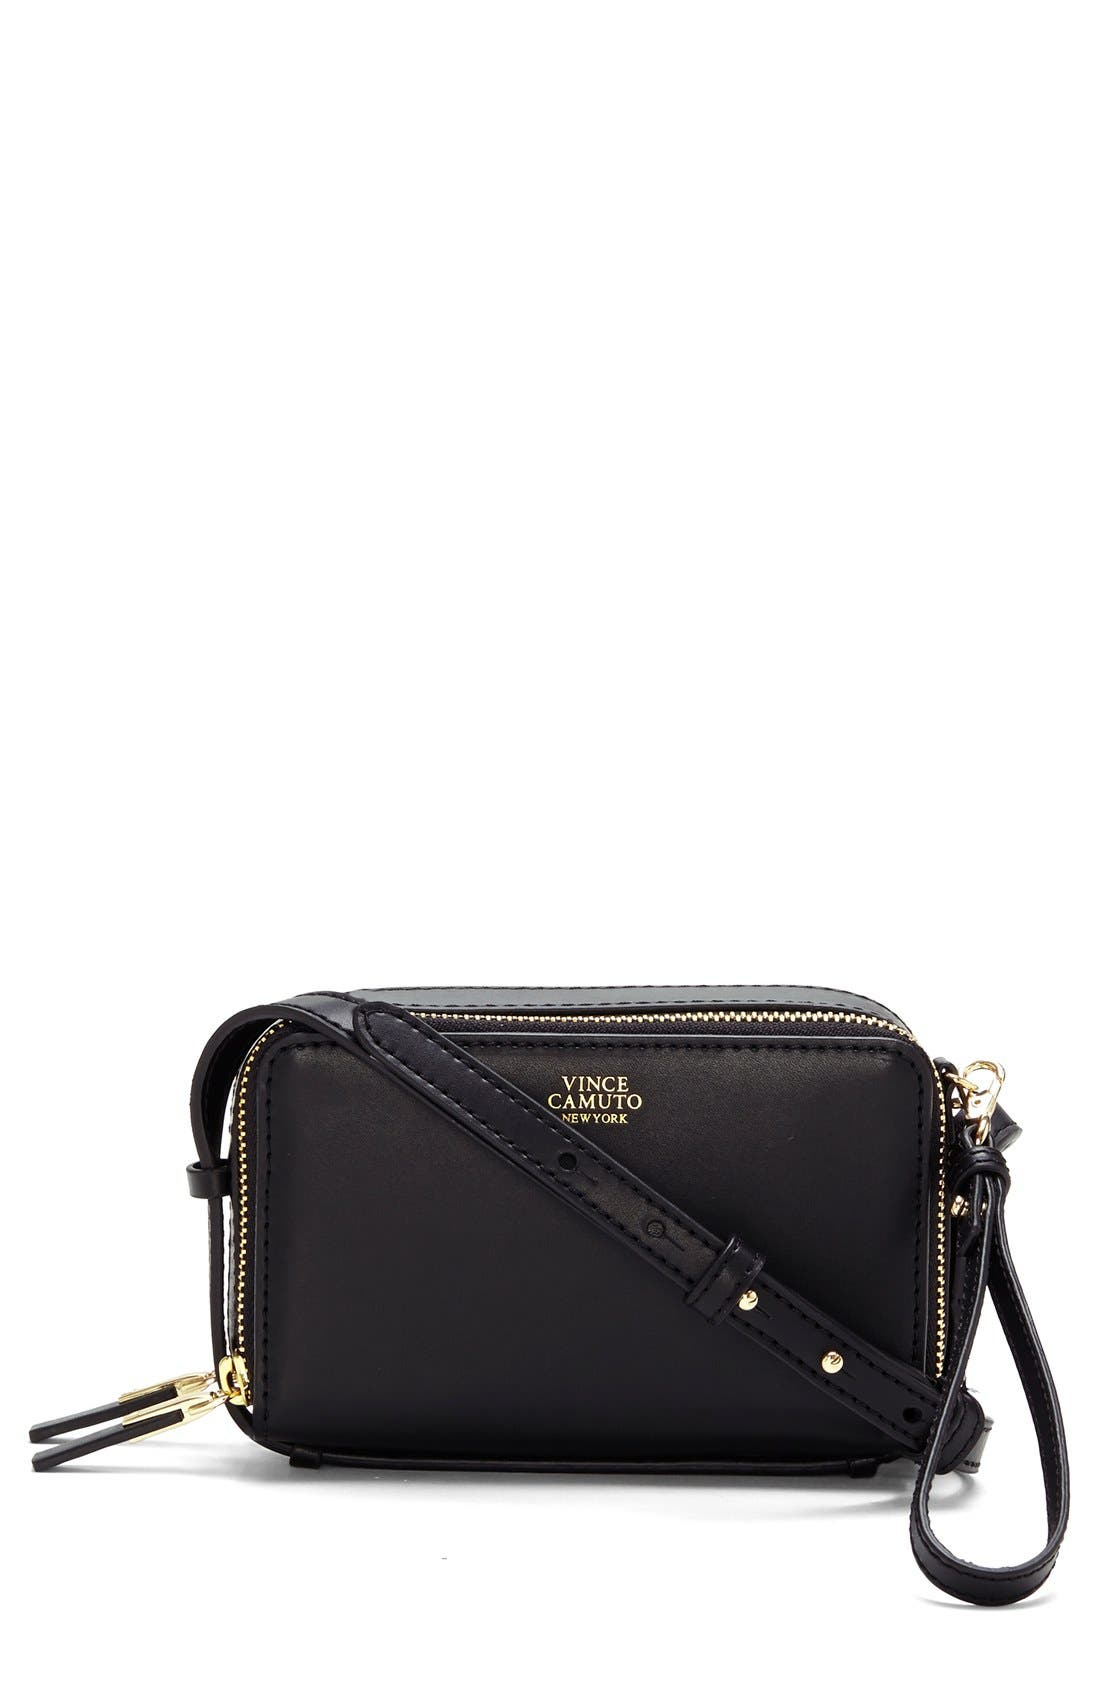 Alternate Image 1 Selected - Vince Camuto 'Brena - Small' Leather Crossbody Bag